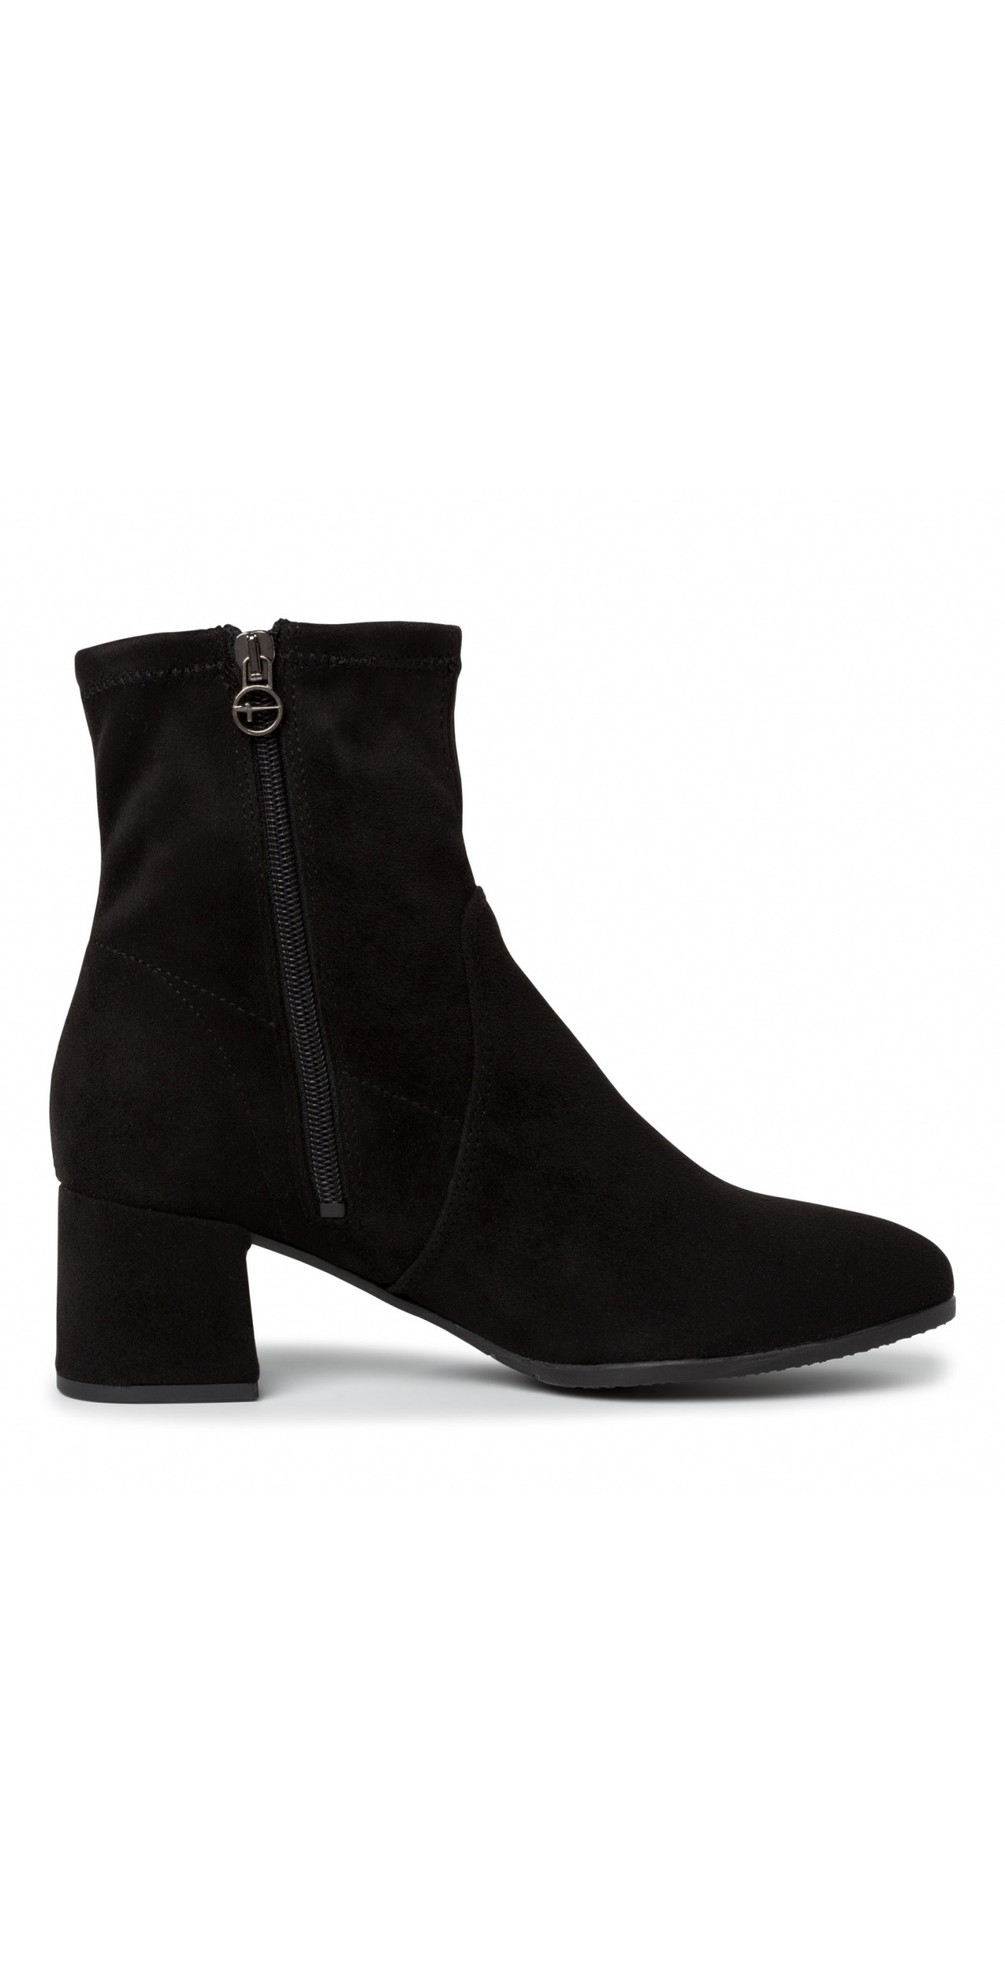 Nadda Stretch Ankle Boot Block Heel main image